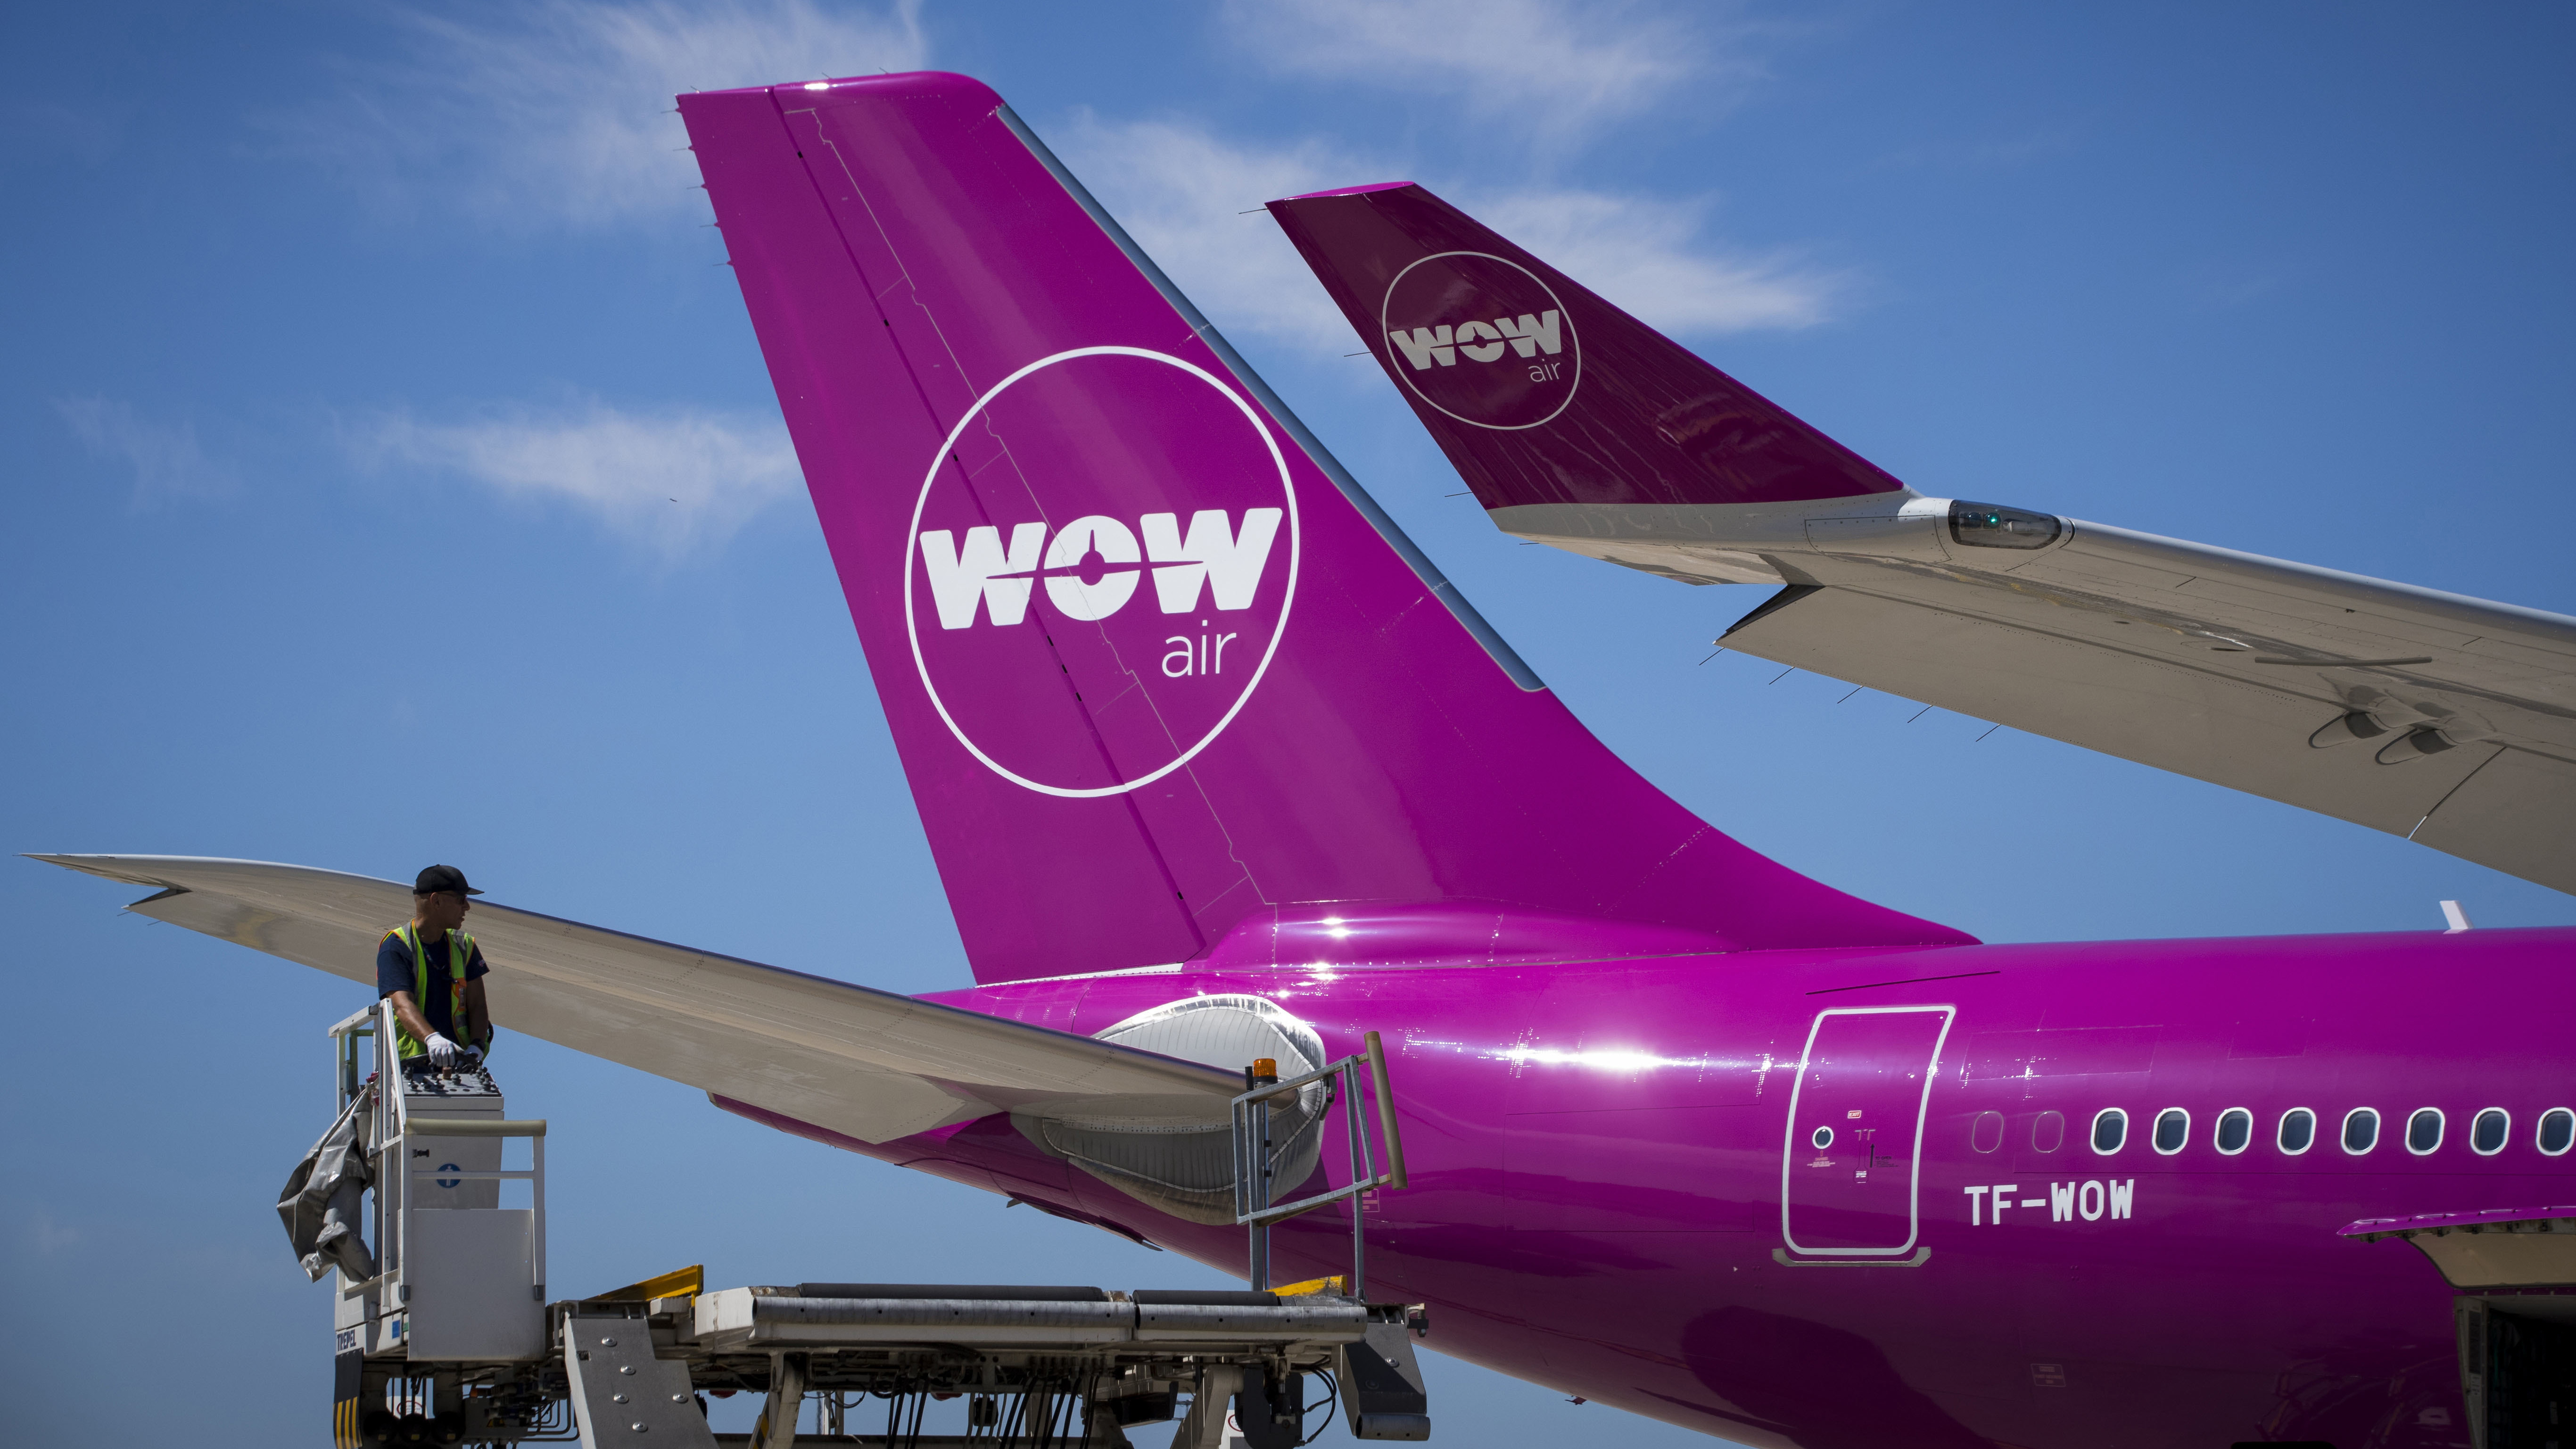 The Rise And Fall Of Iceland's WOW Air